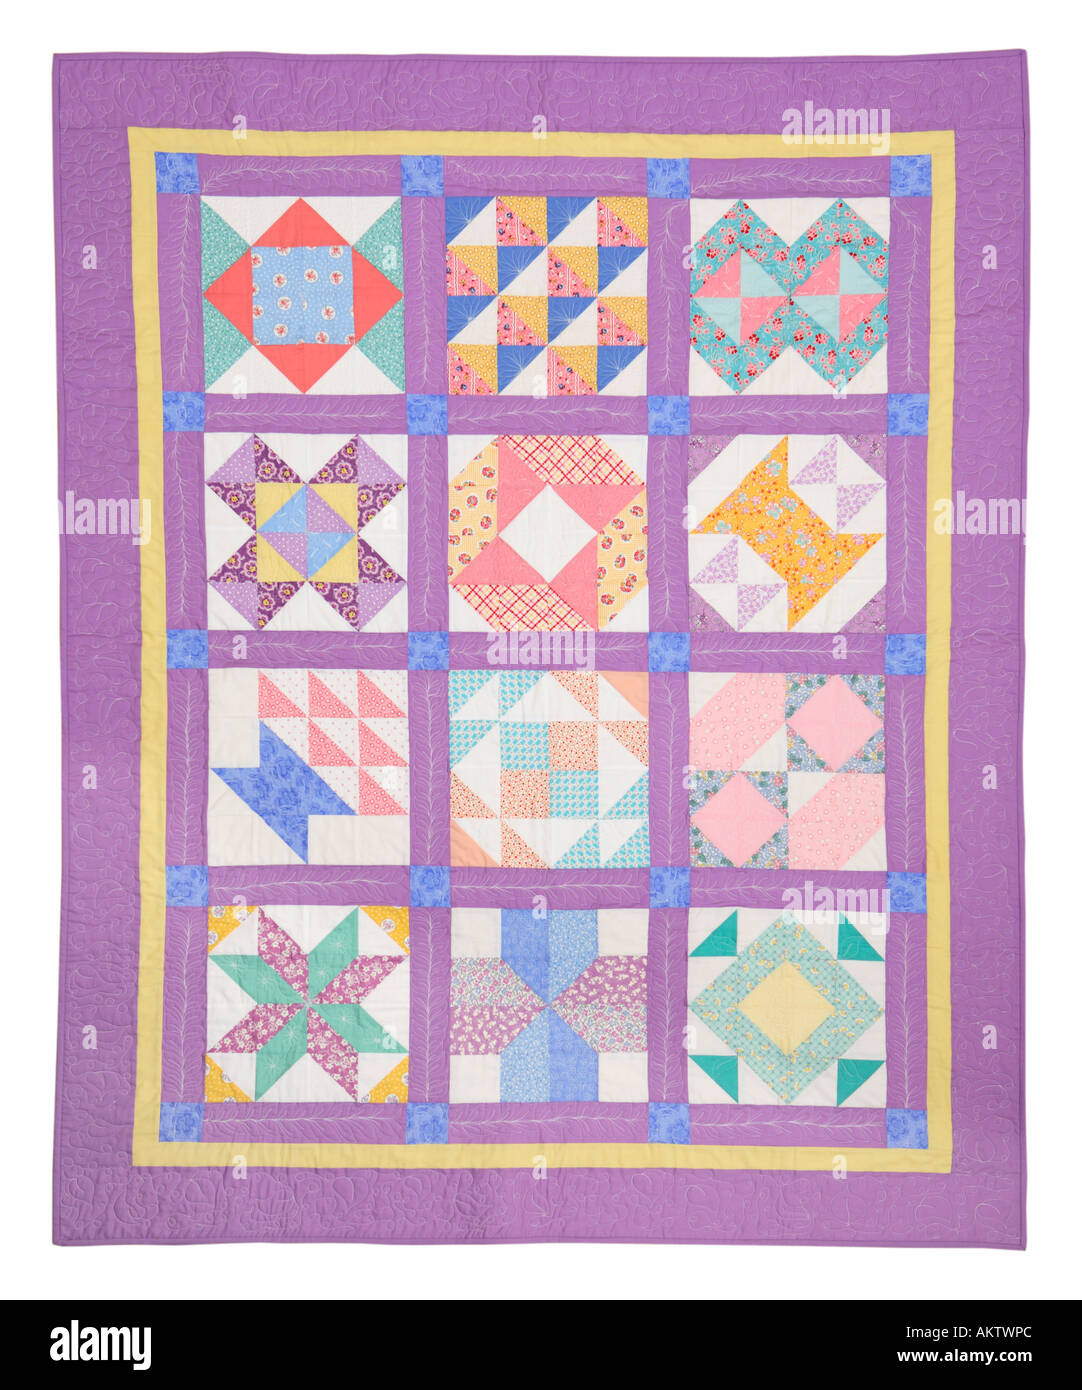 Quilt - Stock Image